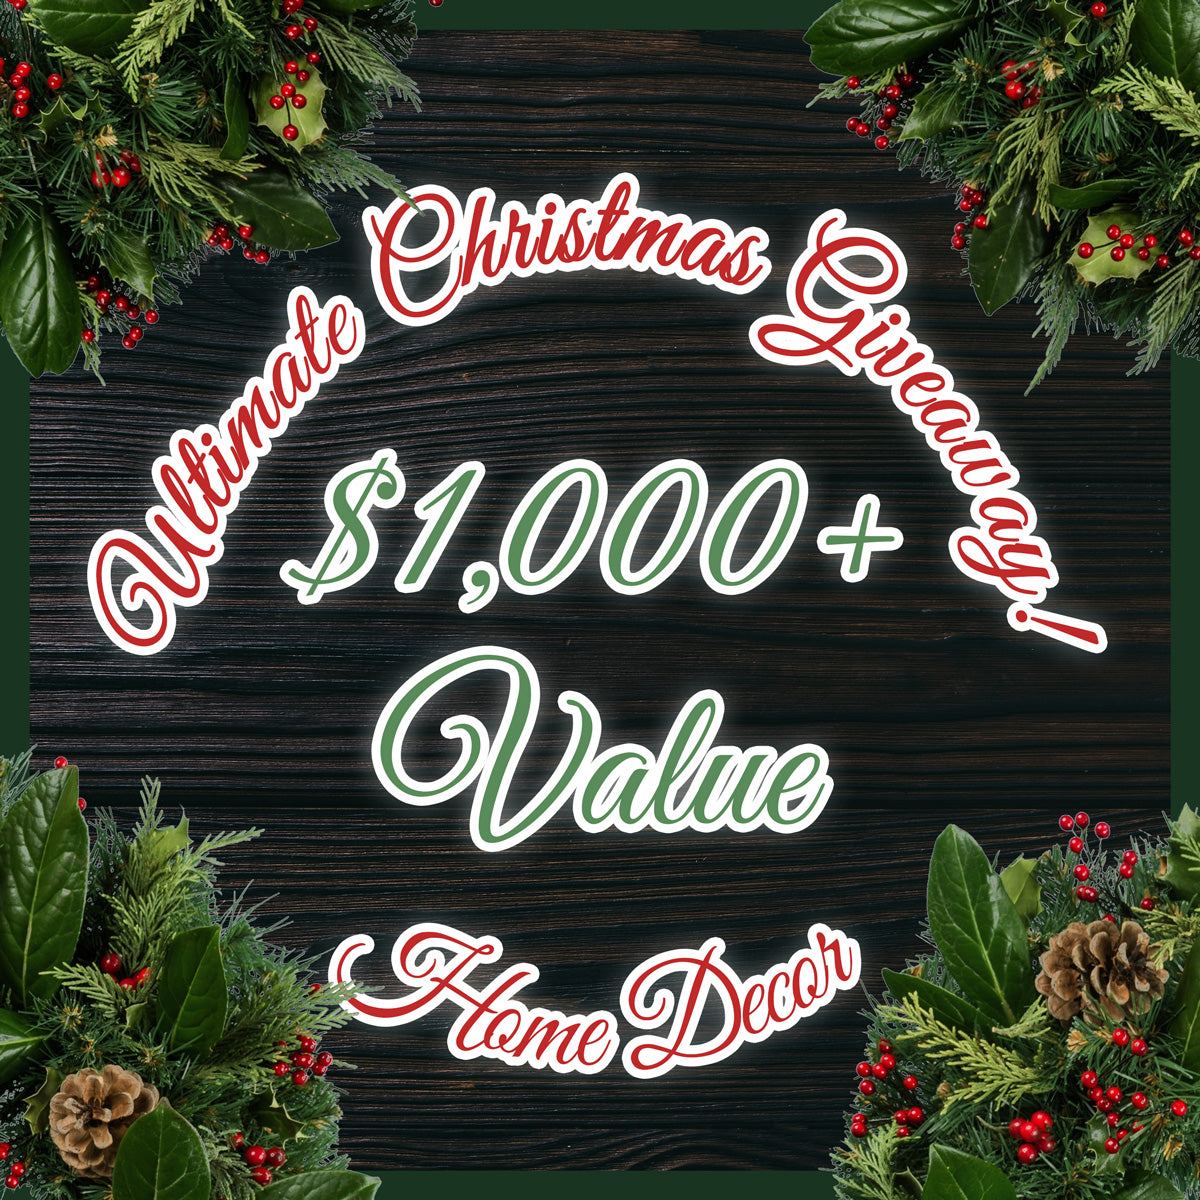 Ultimate Christmas Home Decor Furniture Giveaway